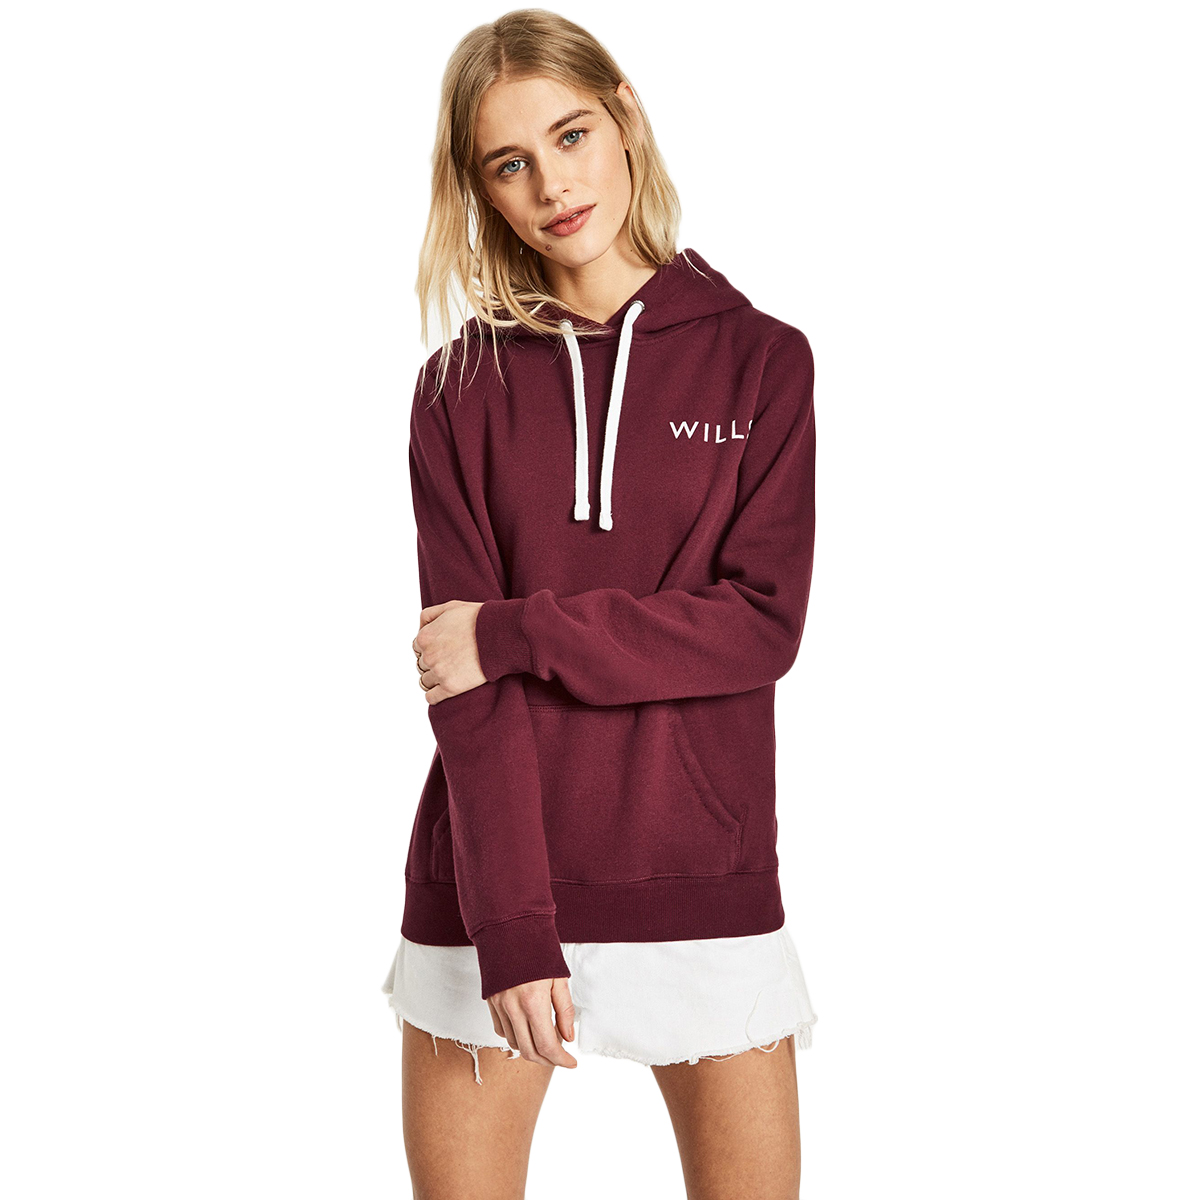 Jack Wills Women's Hunston Logo Hoodie - Red, 10